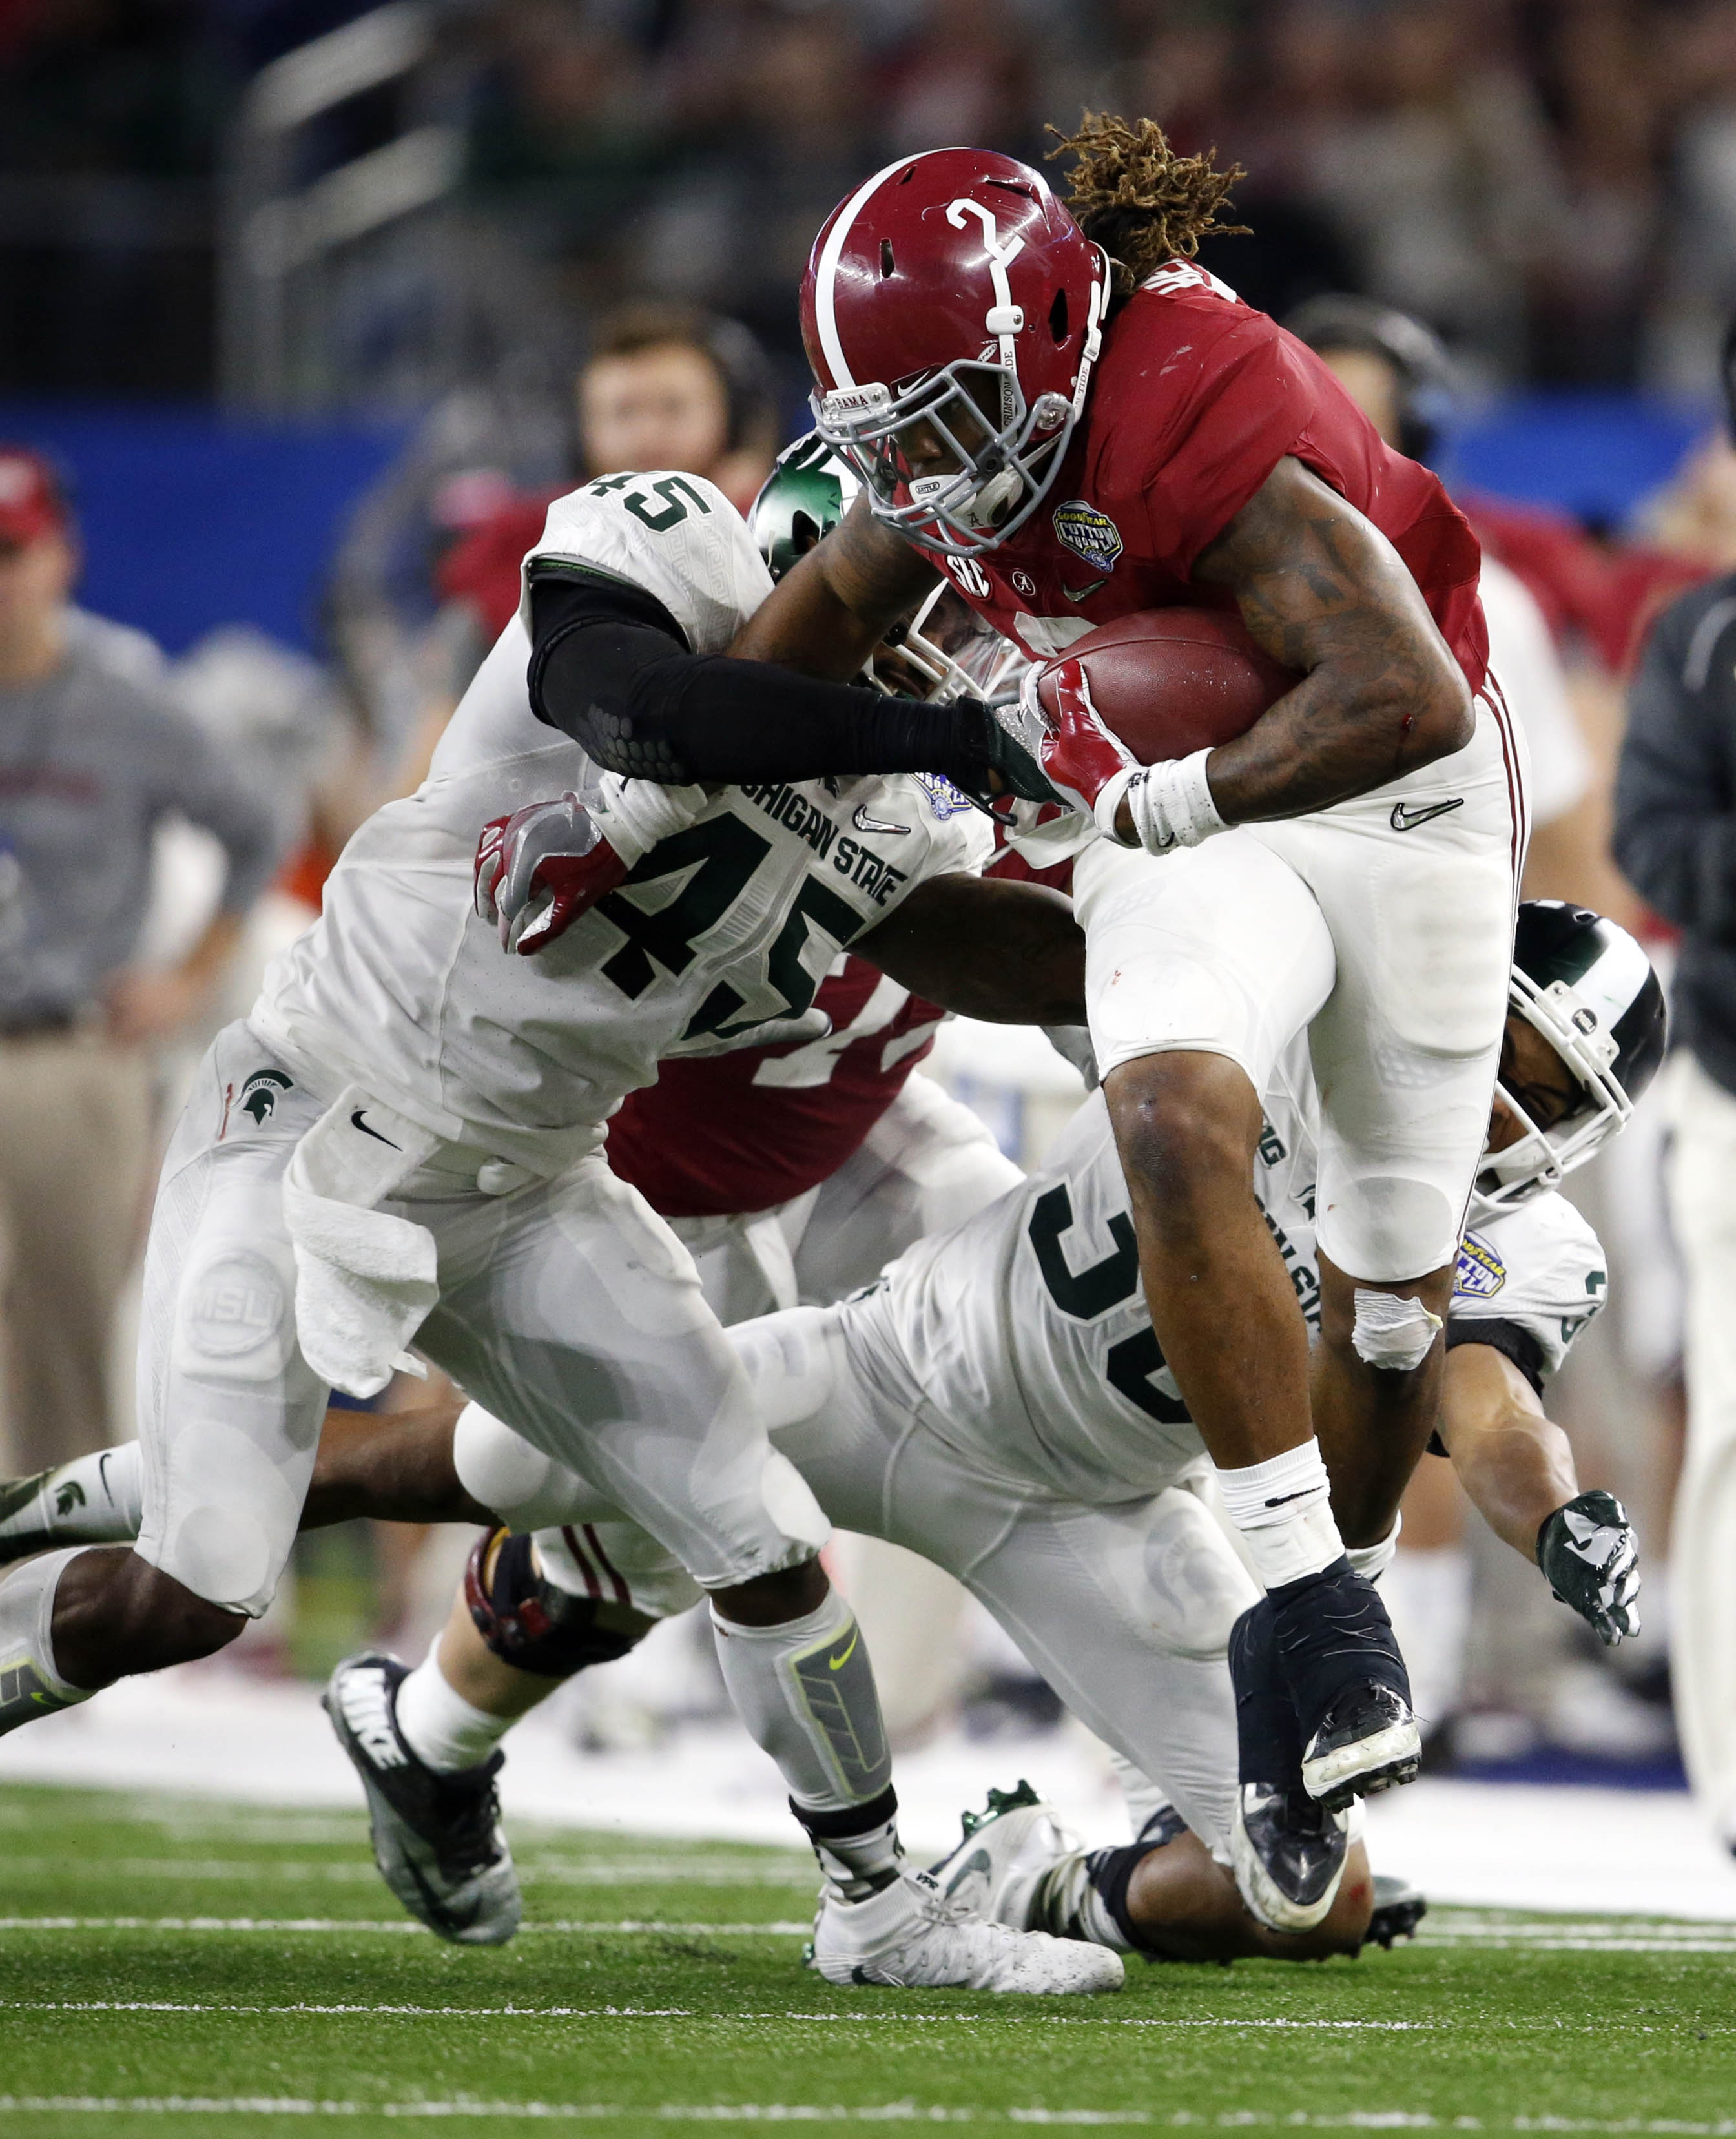 Alabama vs. Michigan State final score, plus 3 things to know from the Tide's 38-0 Cotton Bowl win